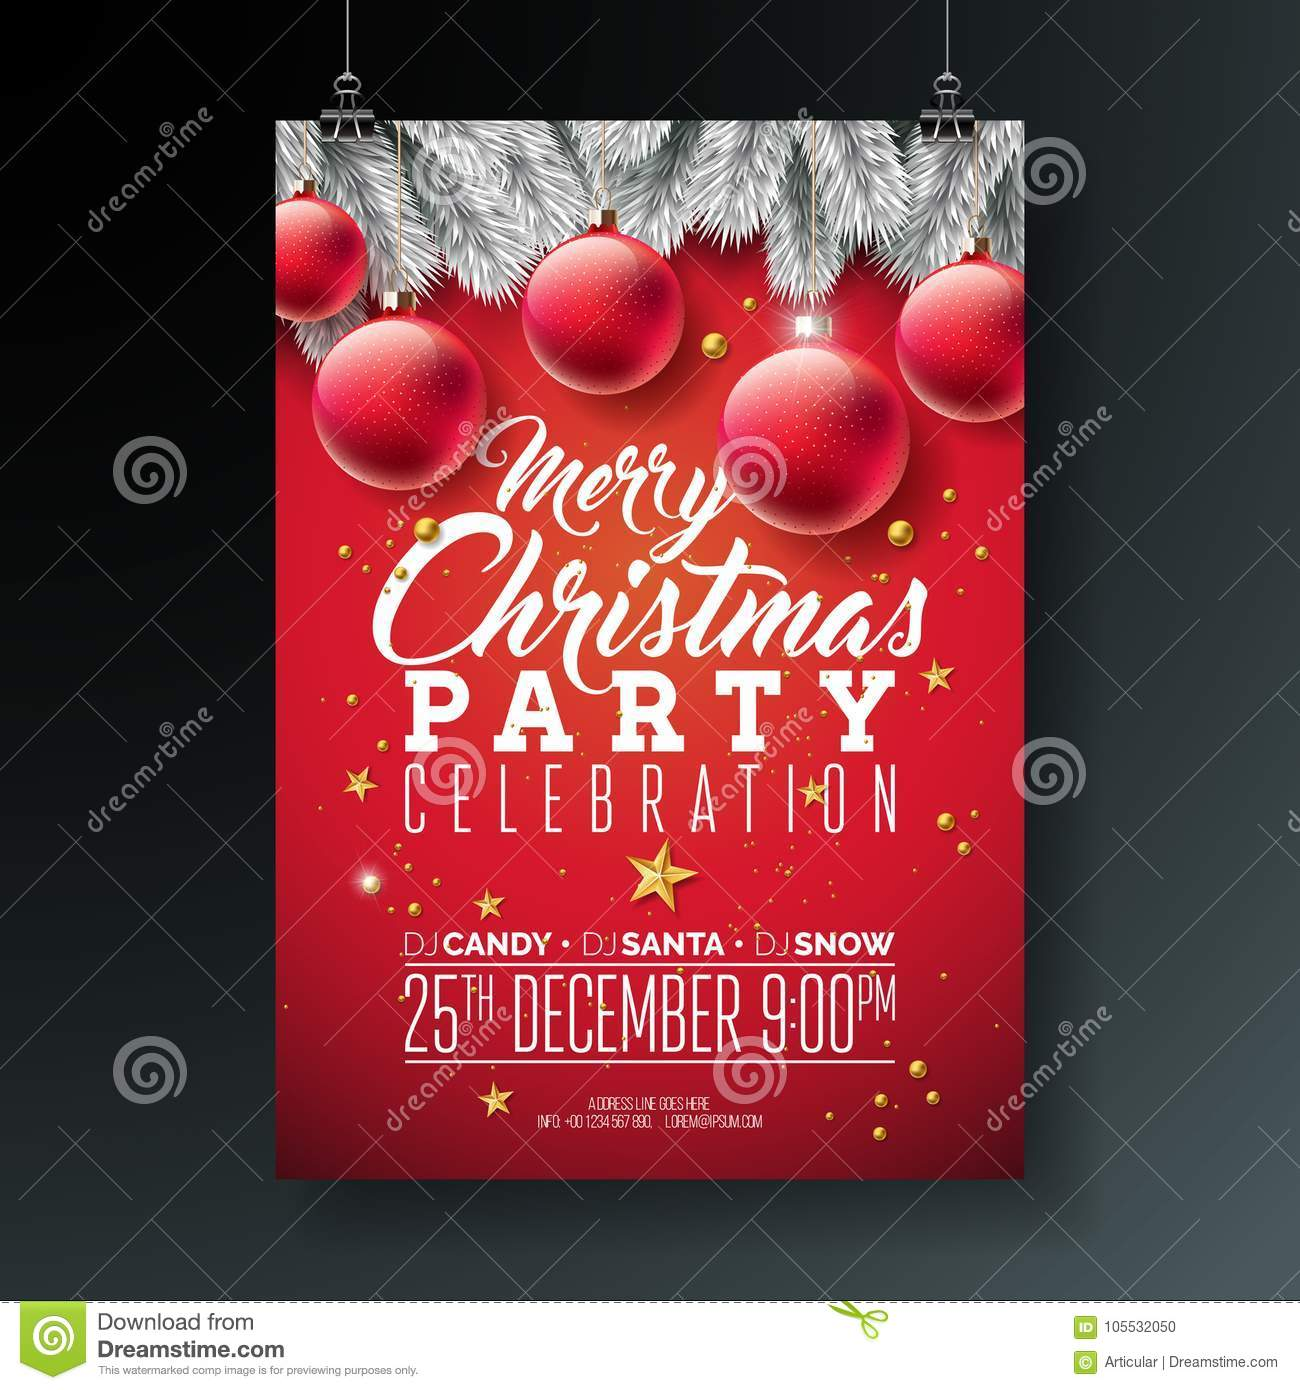 vector merry christmas party flyer illustration with typography and